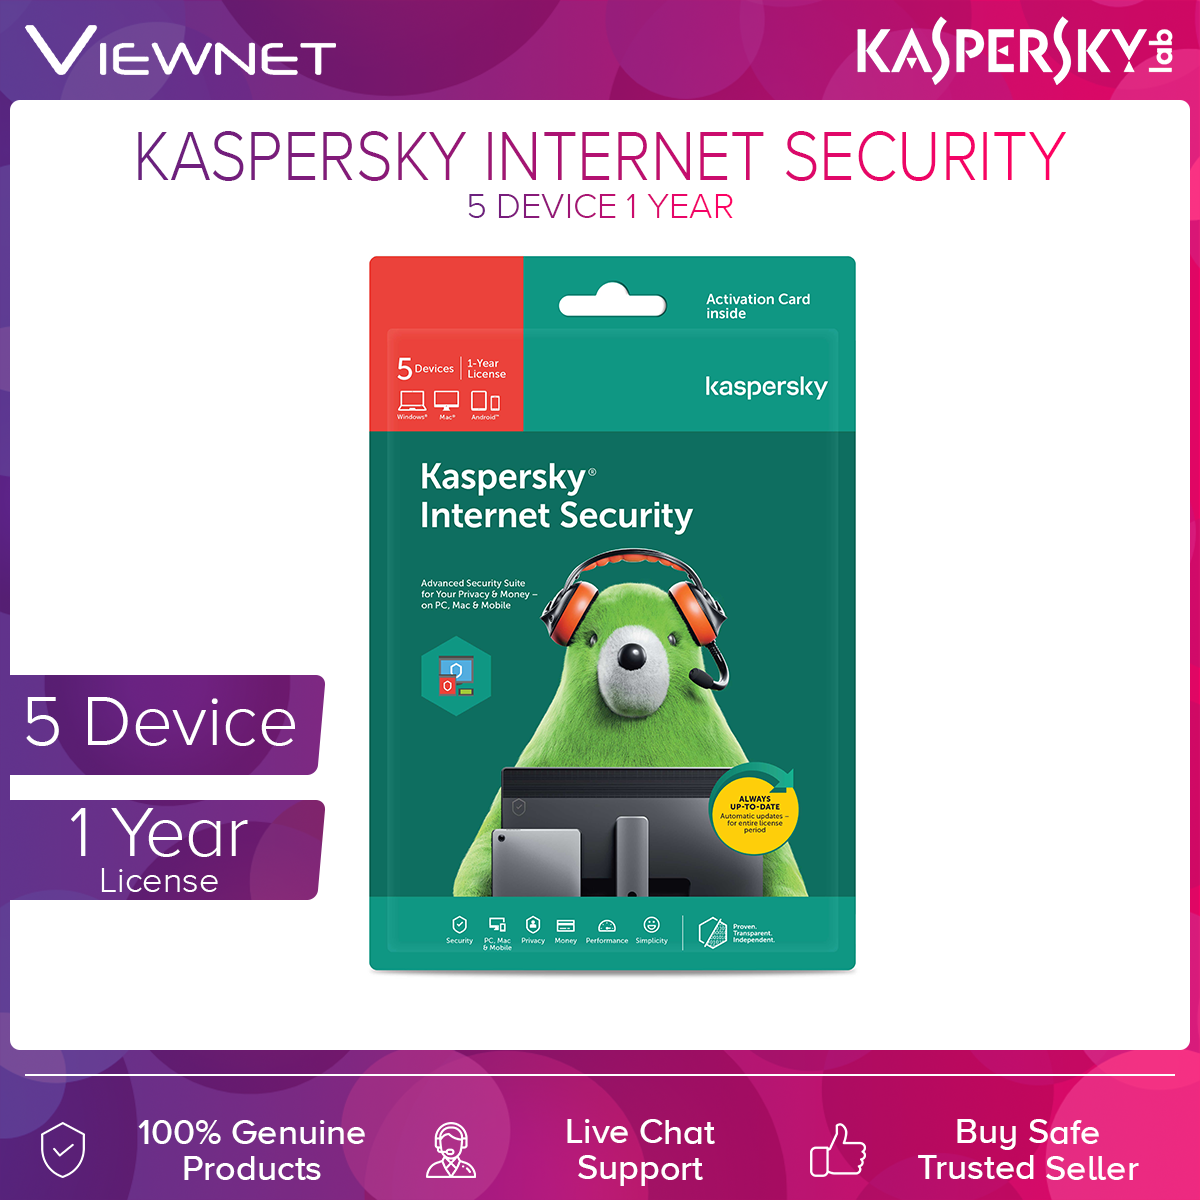 Kaspersky Internet Security 5 Device 1 Year License